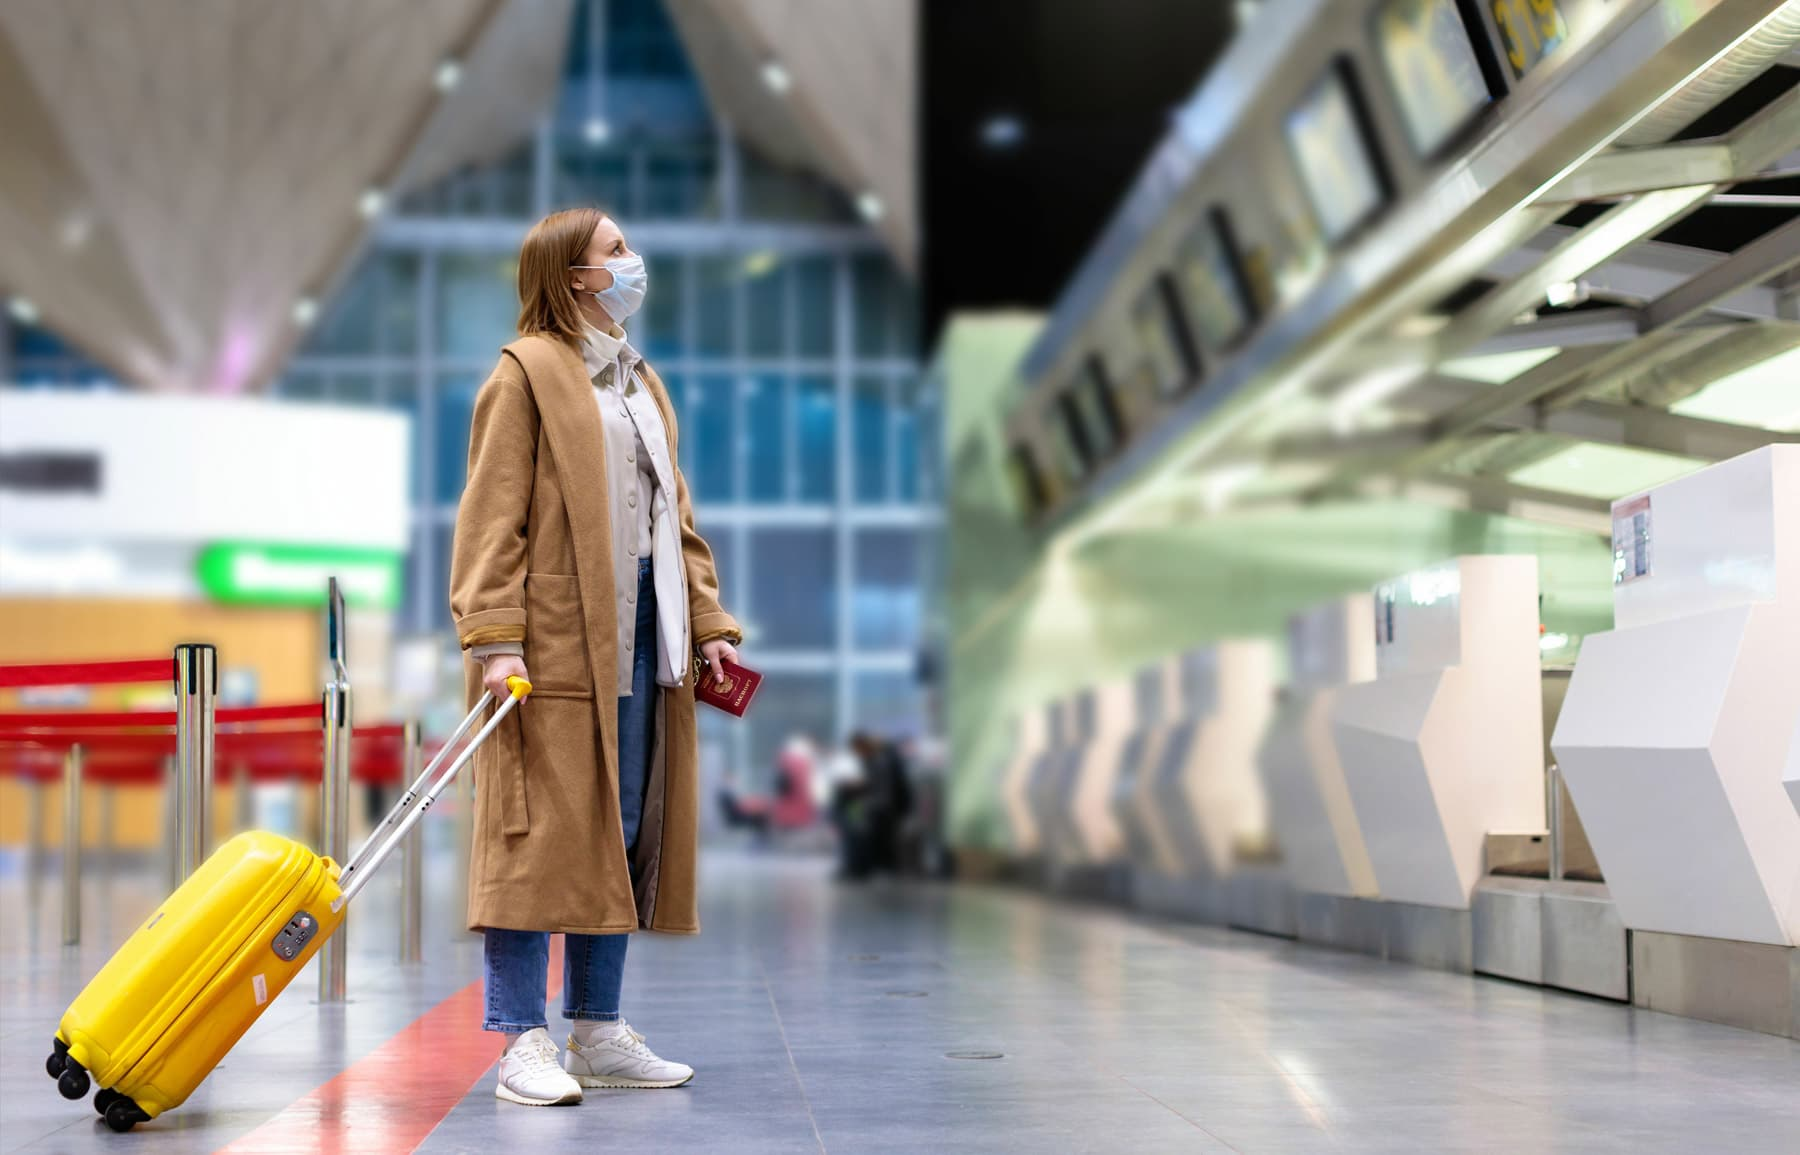 reduce covid-19 isolation time when travelling abroad